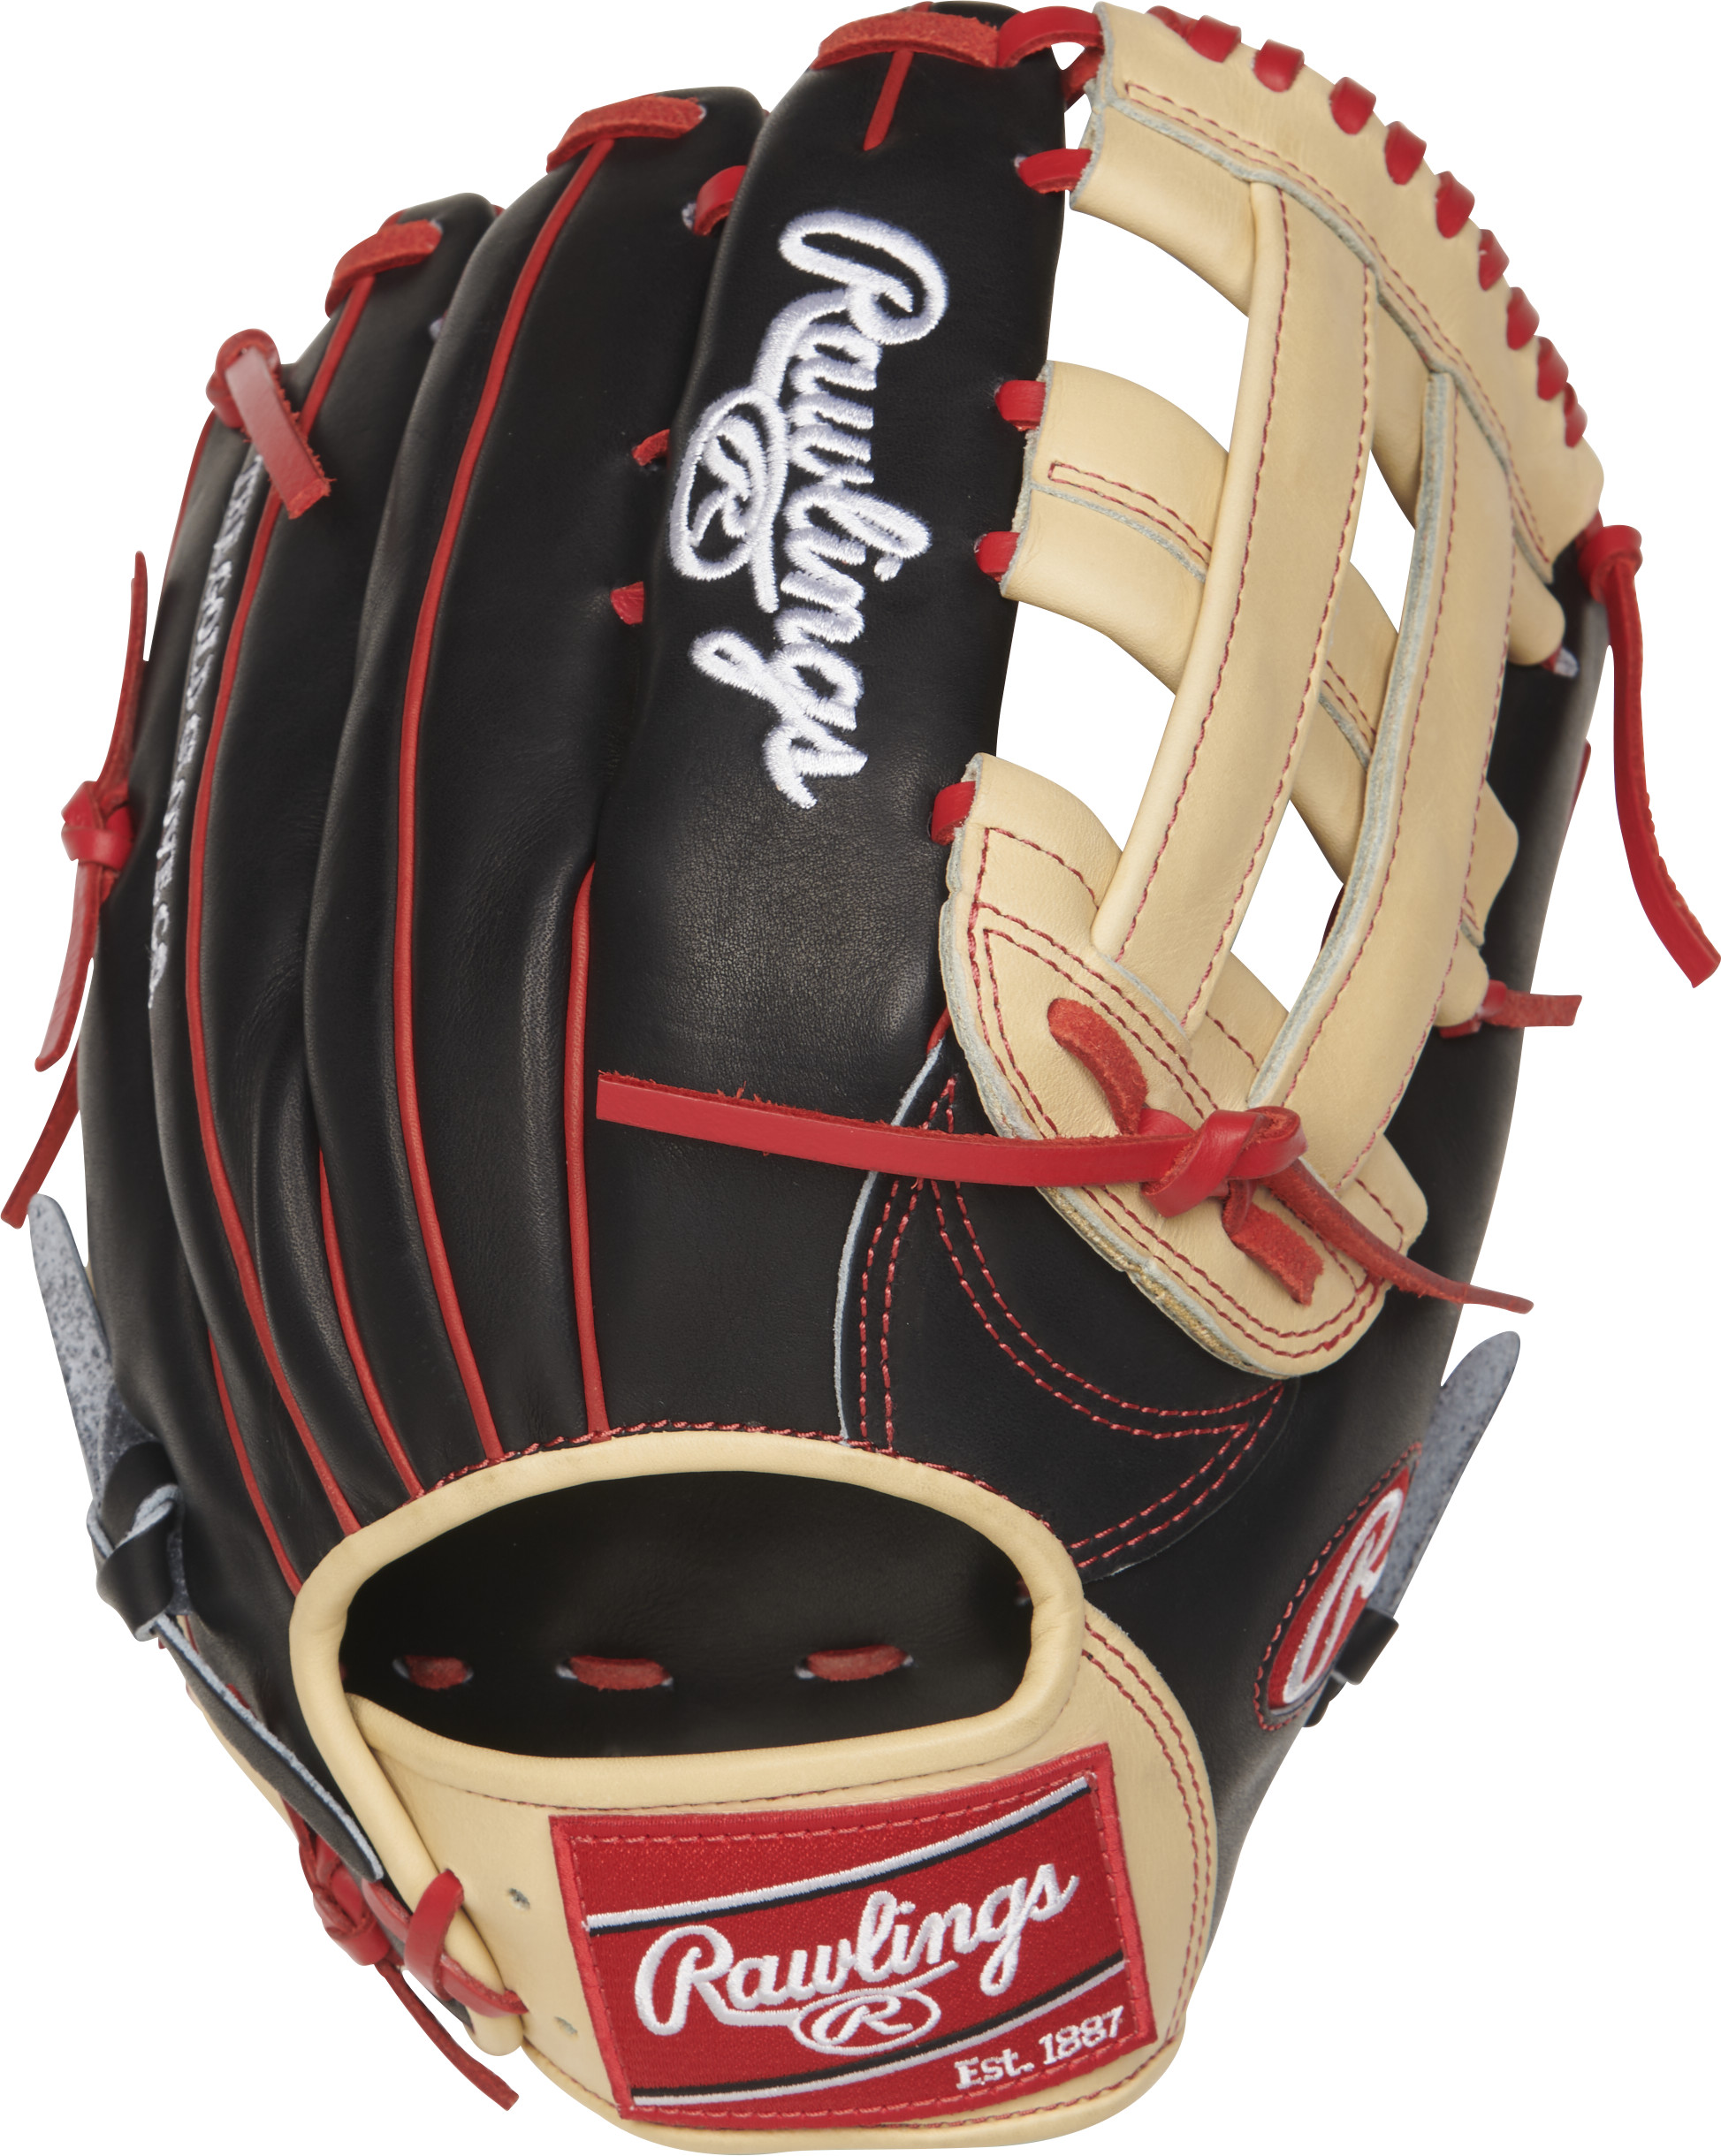 http://www.bestbatdeals.com/images/gloves/rawlings/PROBH34-2.jpg